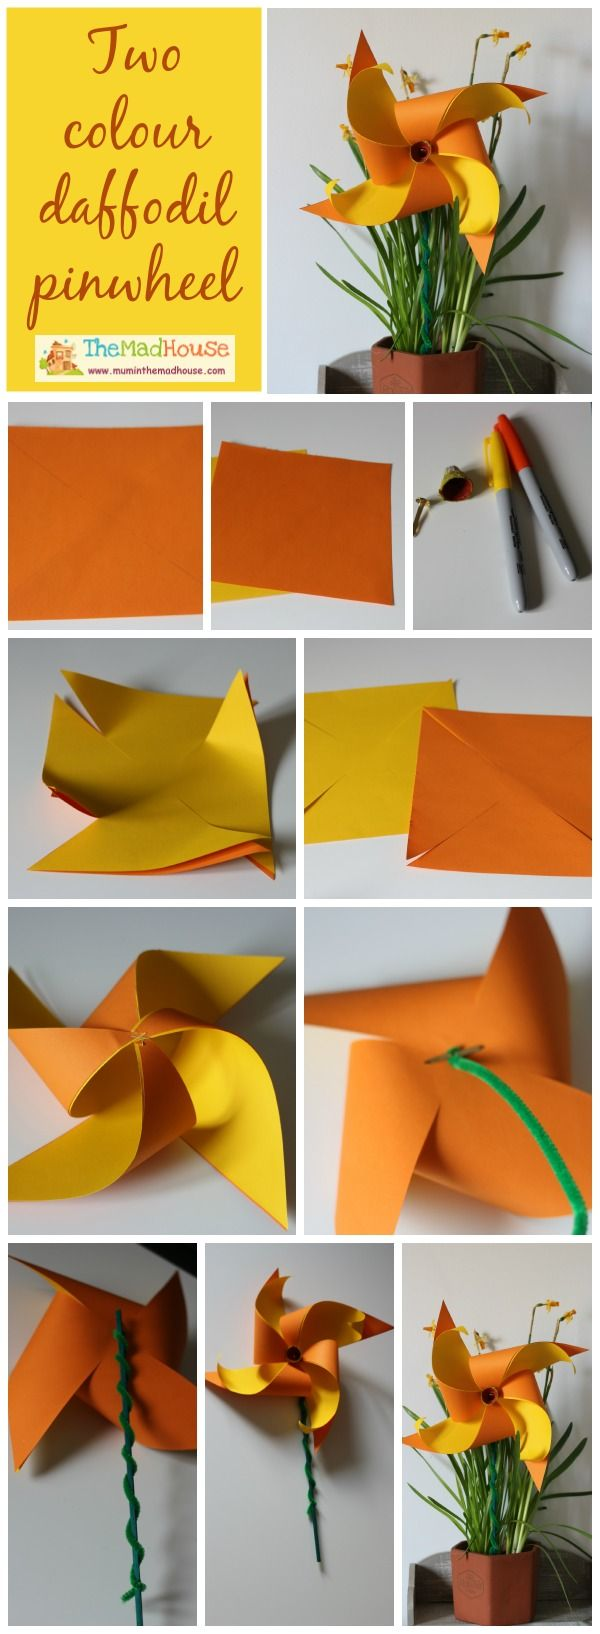 Uncategorized Step By Step Art Projects best 25 daffodil craft ideas on pinterest spring crafts for great step by guide how to create pinwheels http